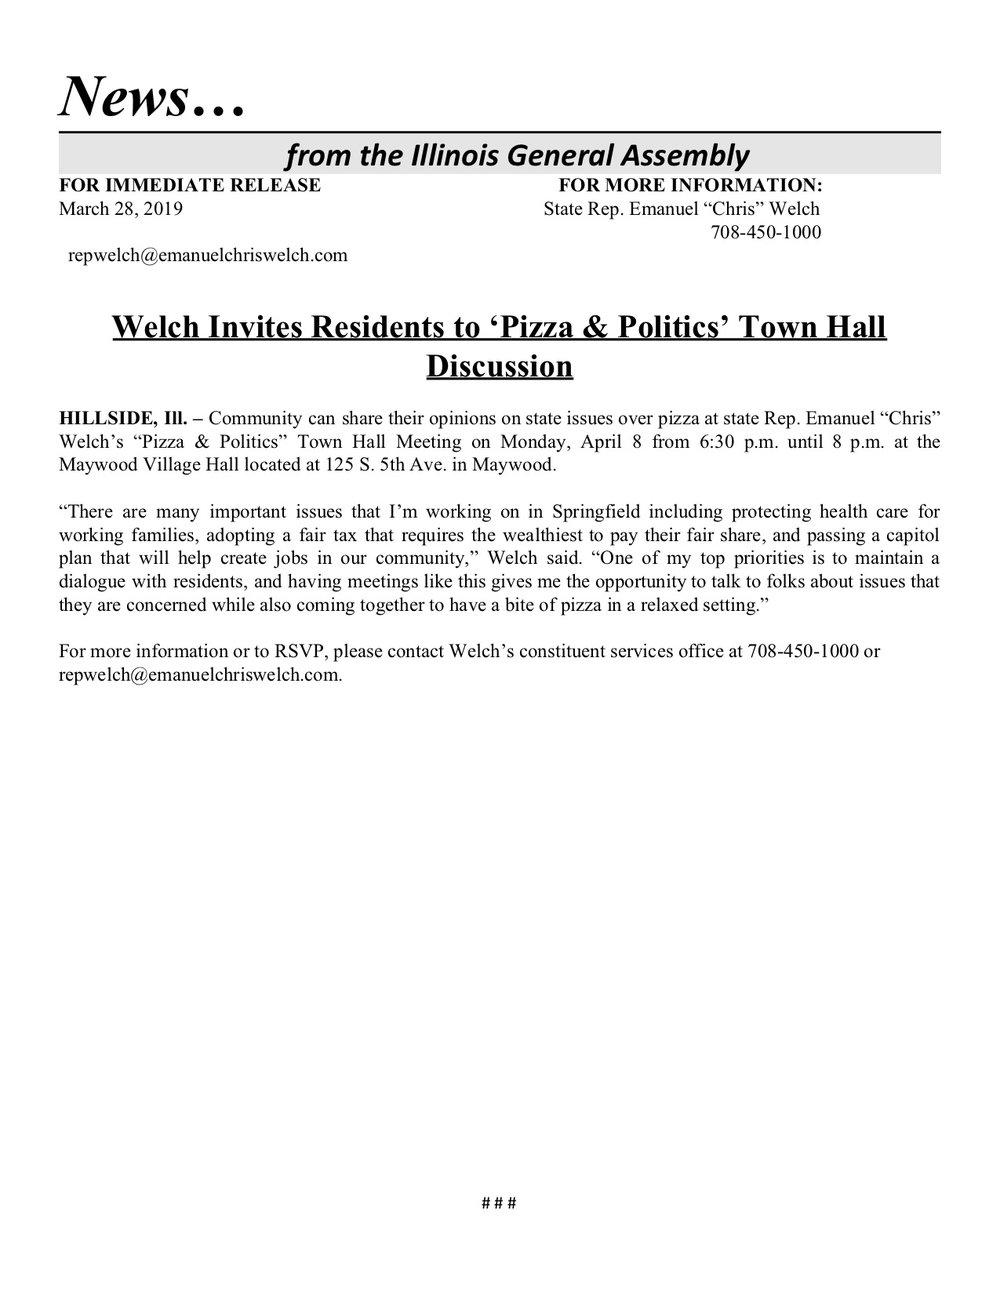 Welch Invites Residents to 'Pizza & Politics' Town Hall Discussion  (March 28, 2019)